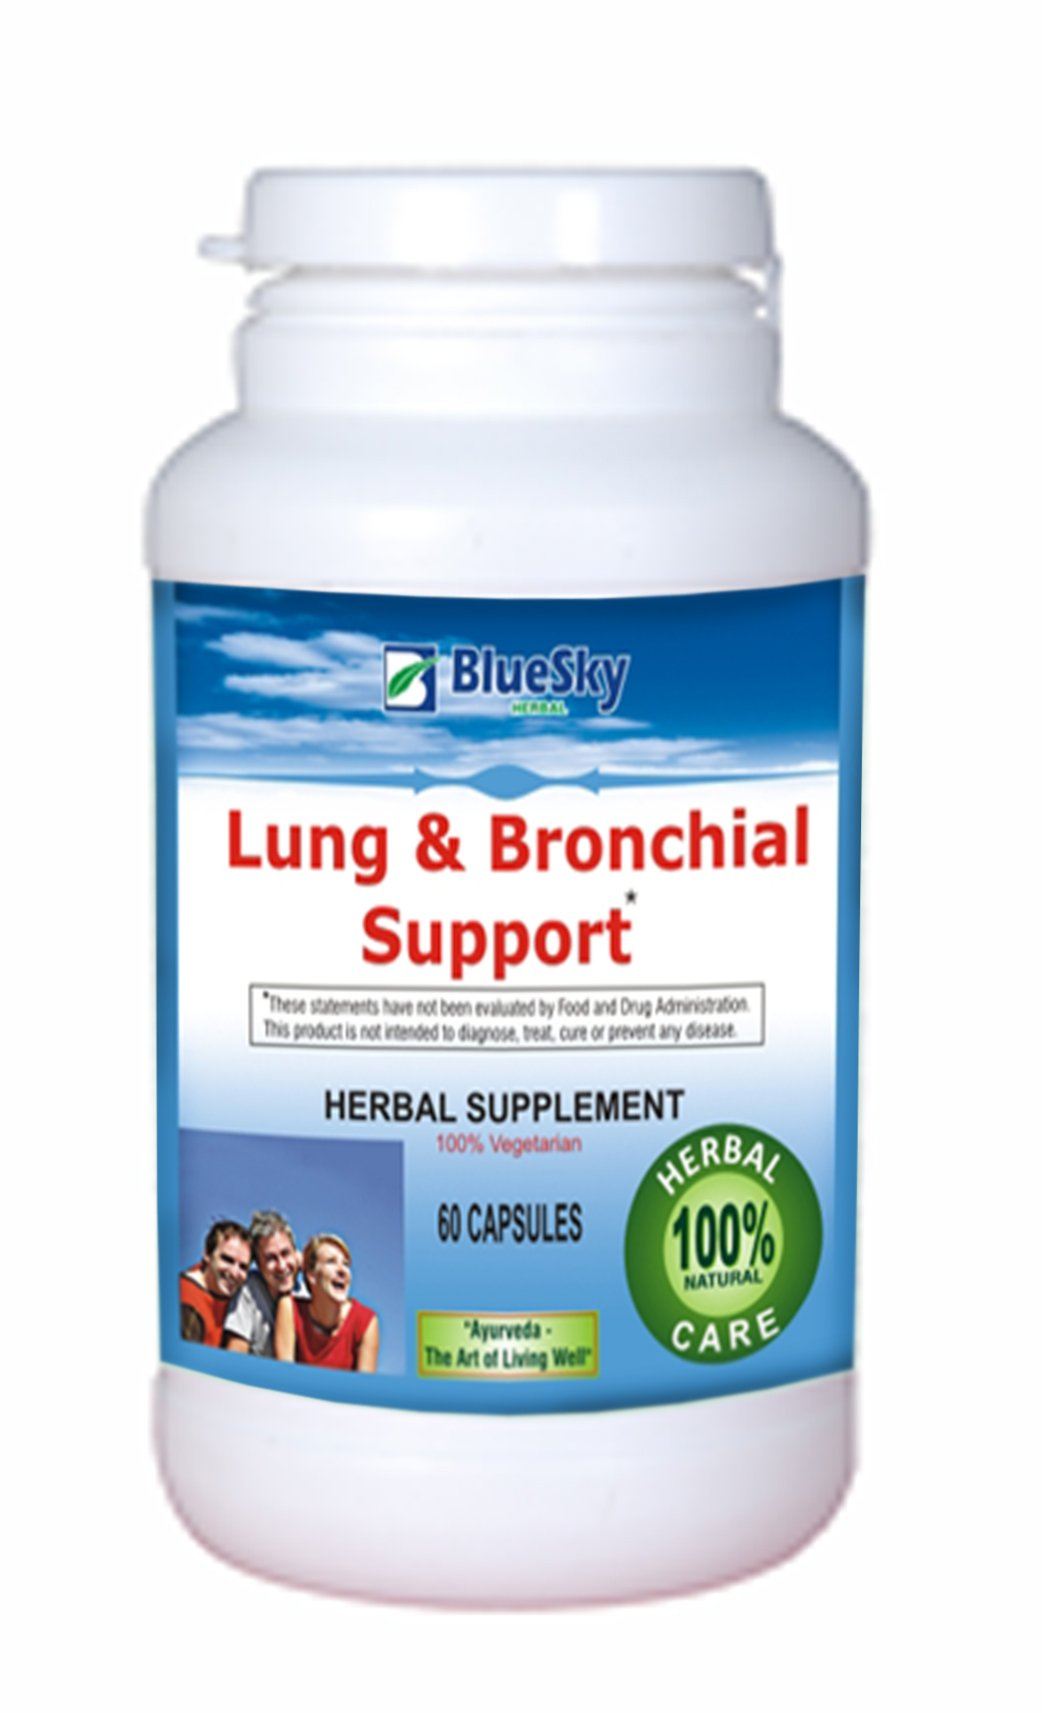 Blue Sky Herbal Asthma-aid -Ingredients - Piper betel,Calotropis prosere,Ocimum sanctum,Zingiber officinale Piper longum,Syzyguim aromaticum. Asthma is a chronic condition that affects an overwhelming 20 million Americans. Furthermore, statistics reveal t by Blue Sky